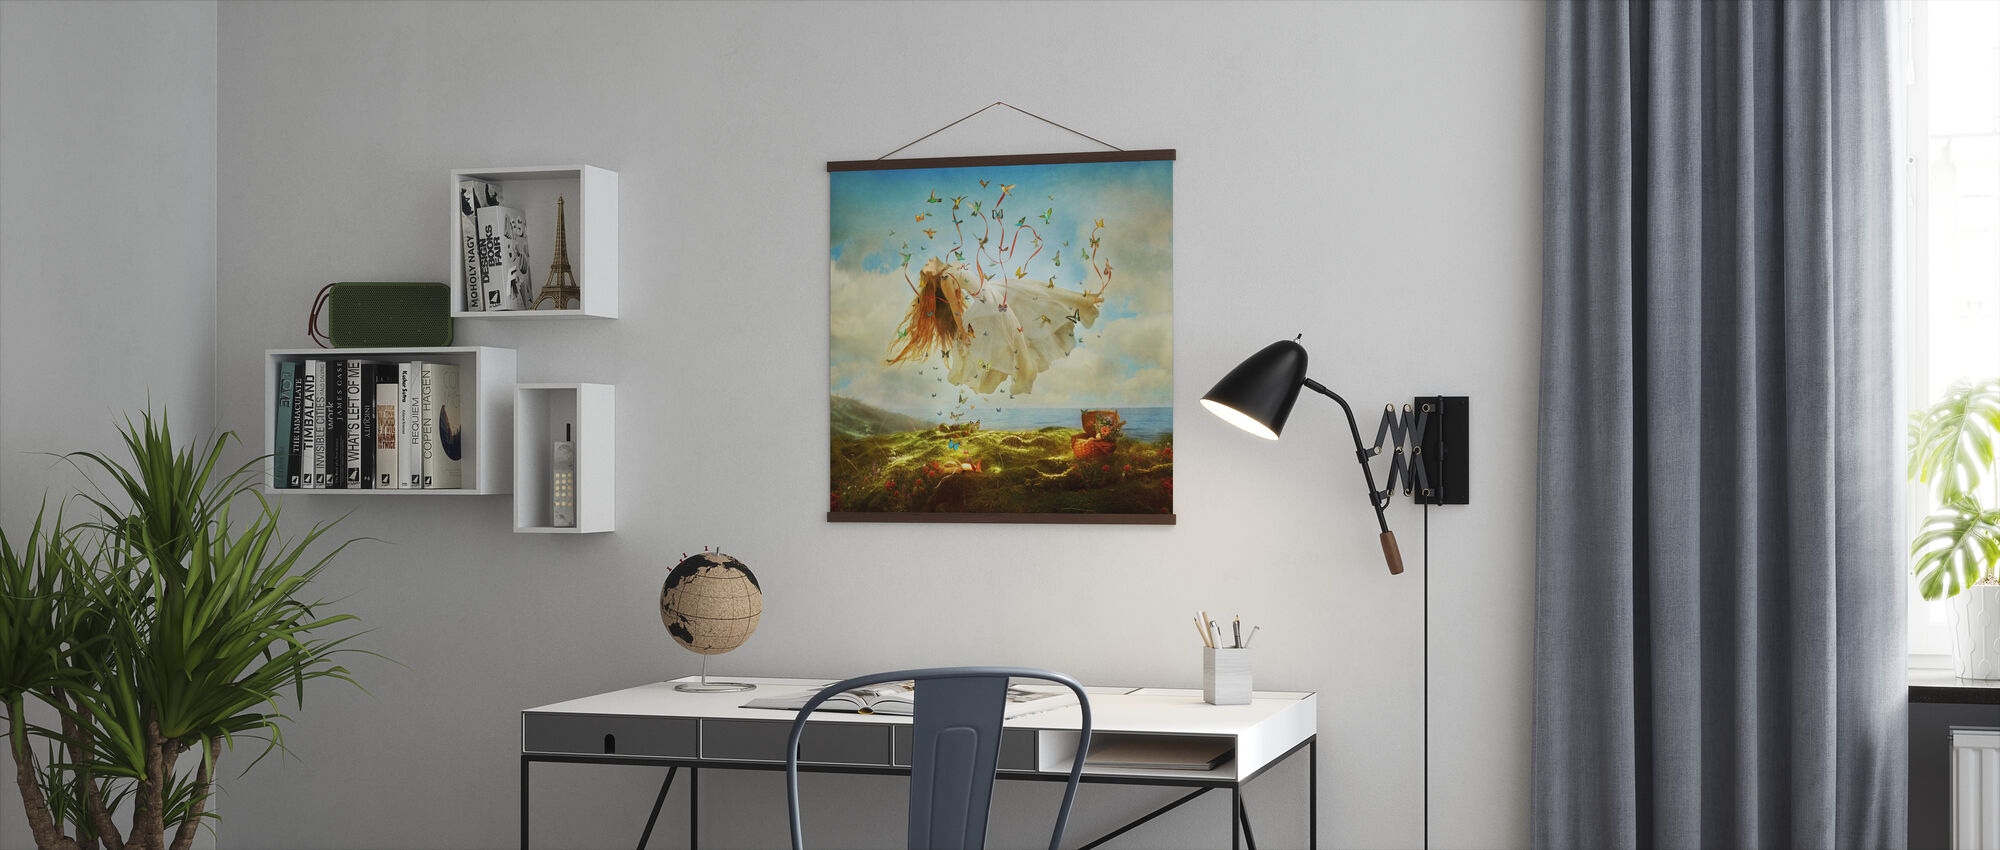 Daydreams - Poster - Office